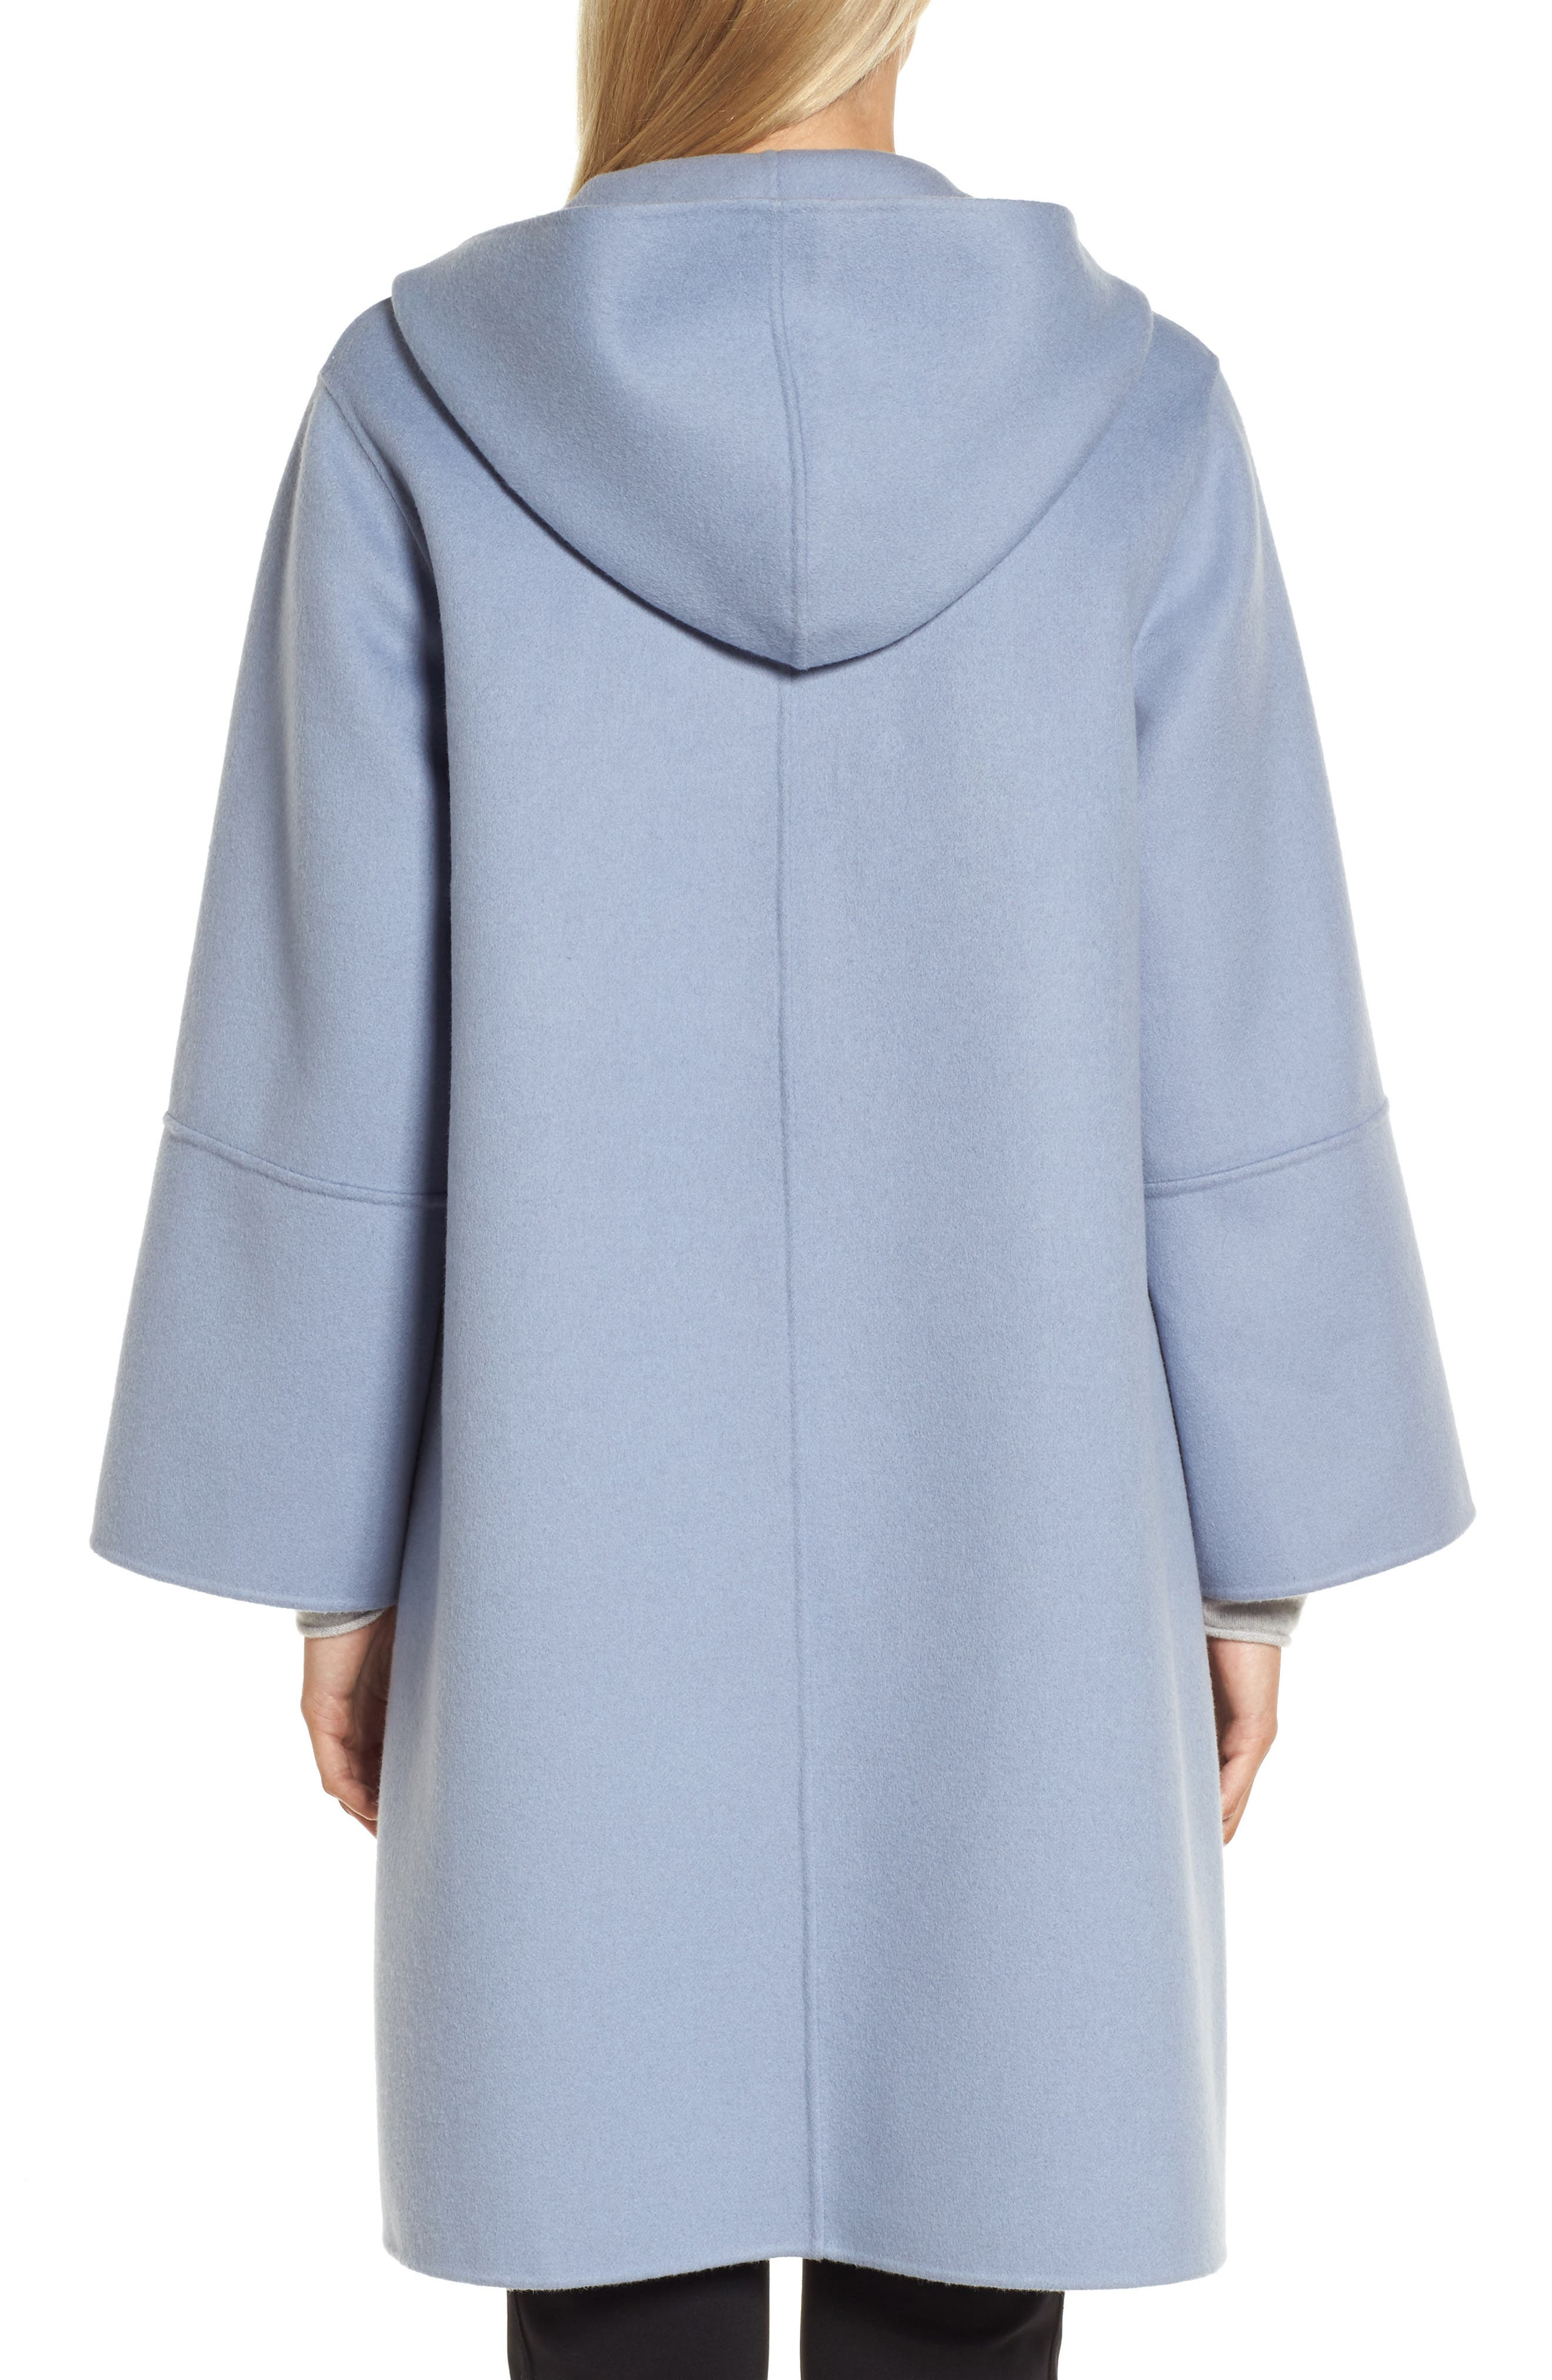 Hooded Wool & Cashmere Coat,                             Alternate thumbnail 2, color,                             Blue Tempest